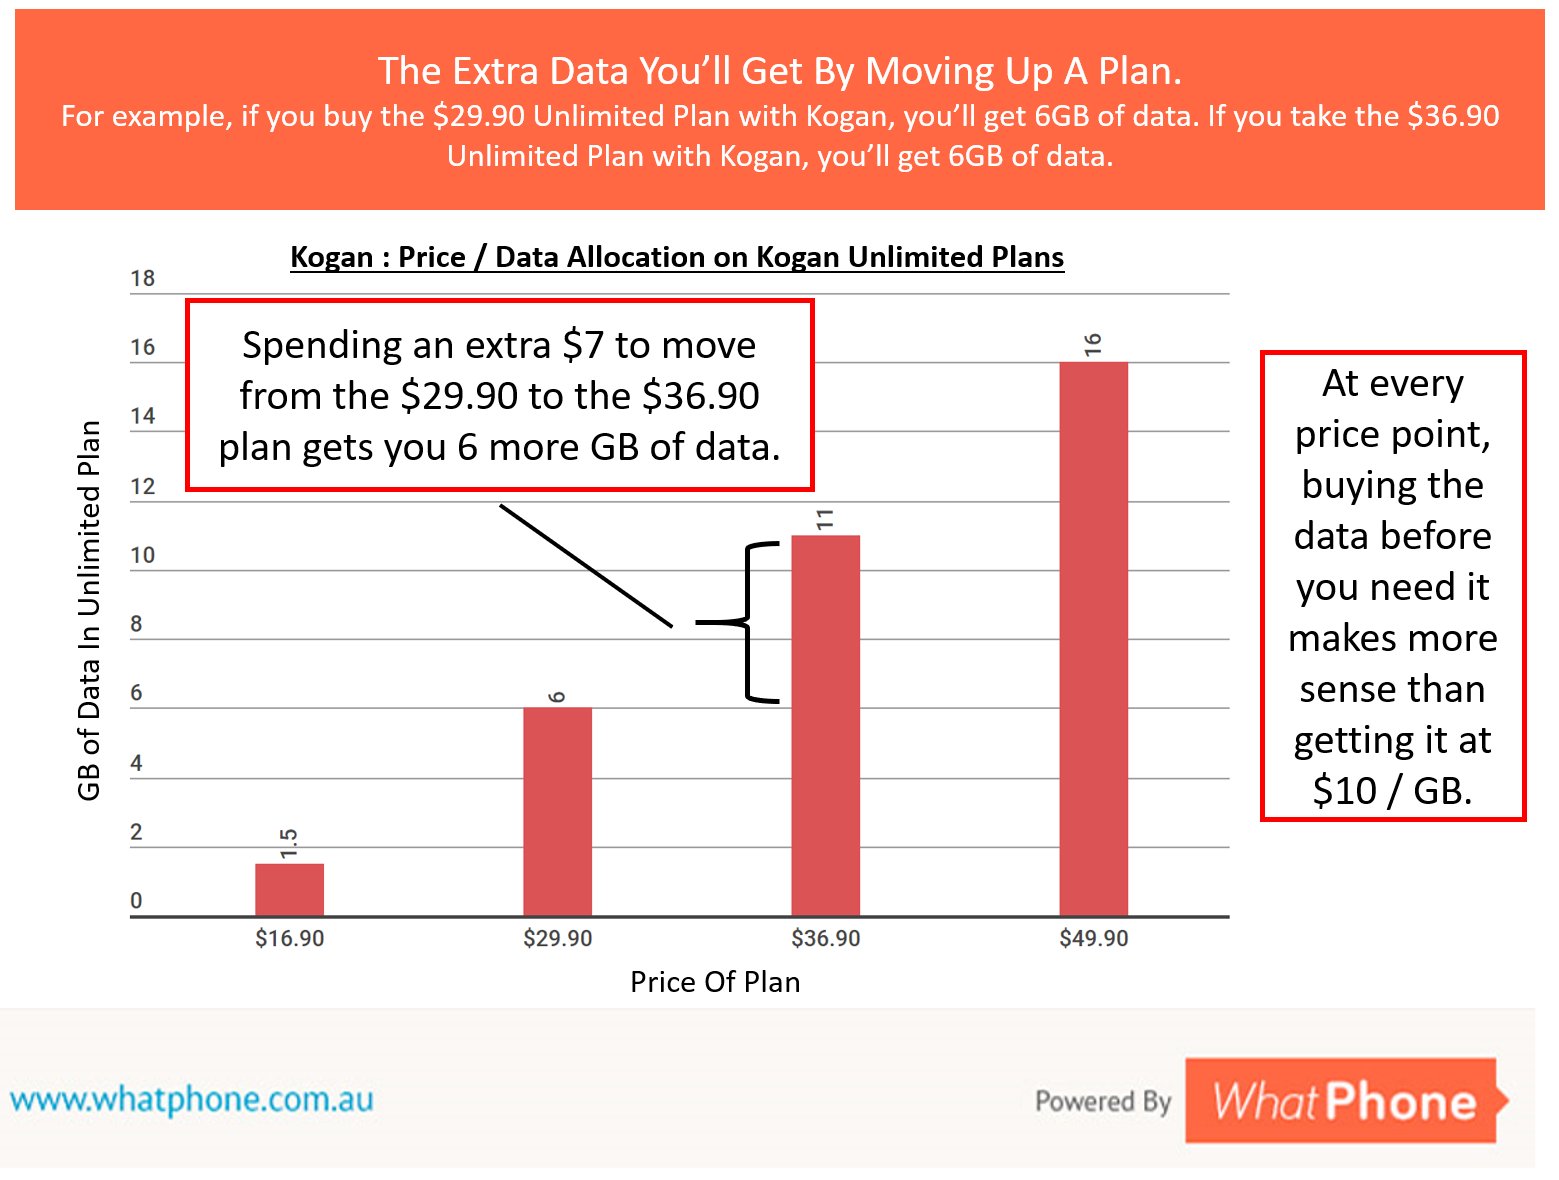 Managing the costs of Unlimited Plans comes down to how well you control your data costs. It's always better value to buy the data before you need it than have it charged as 'overage'.